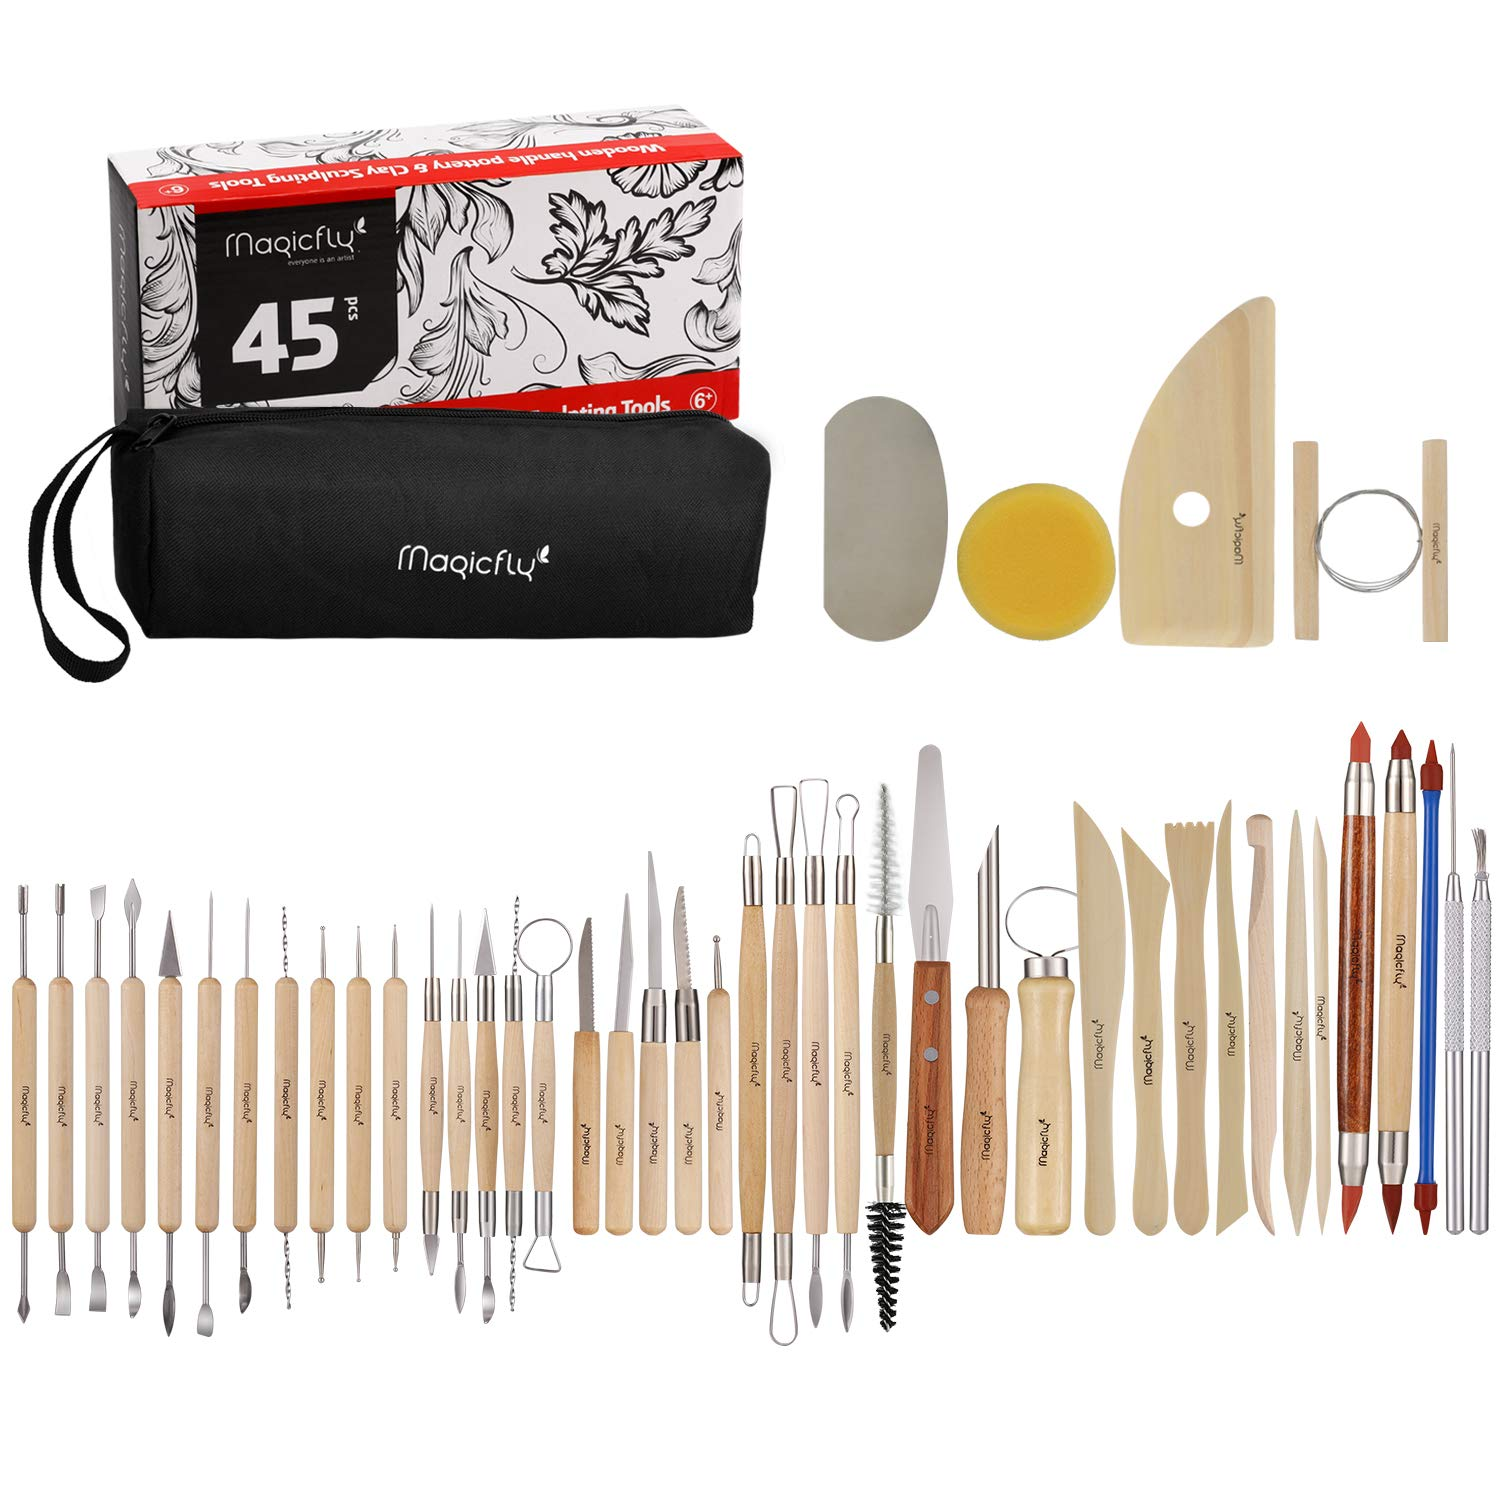 Magicfly Pottery Tools, 45Pcs Clay Sculpting Tools Set with Storage Bag, Wooden Ceramic Tools for Art Crafts, Beginners